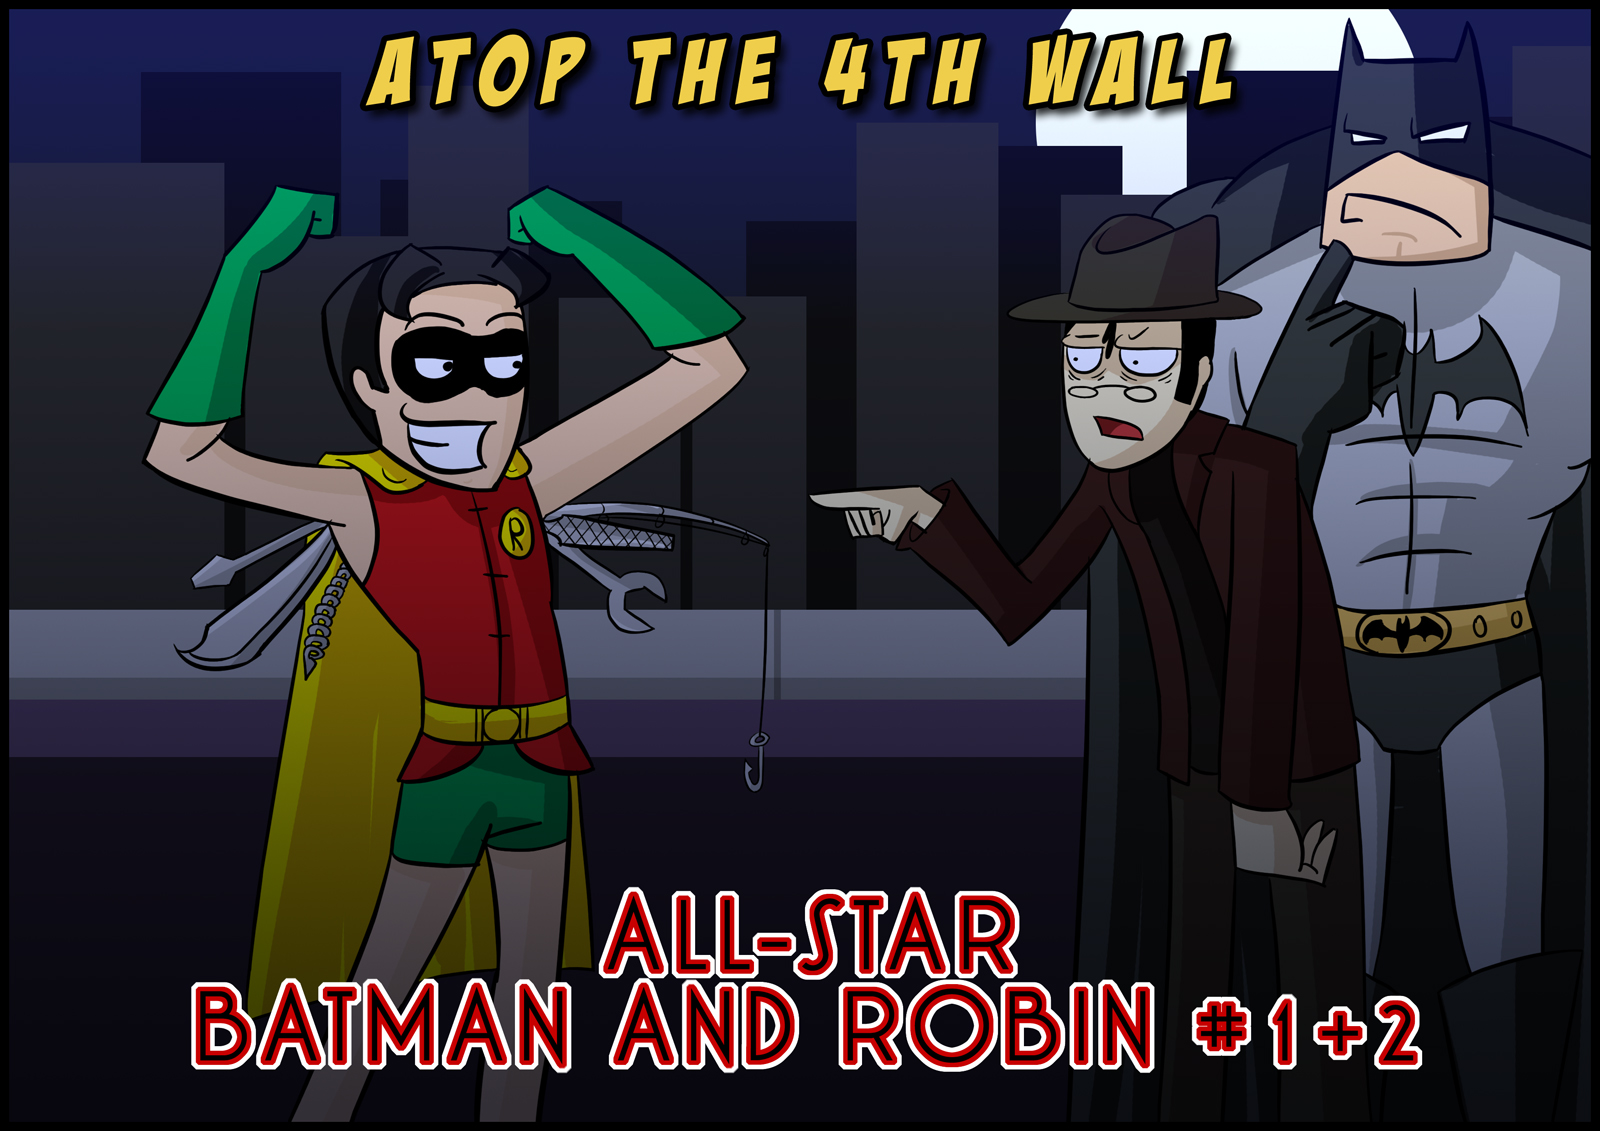 All-Star Batman and Robin 1 and 2